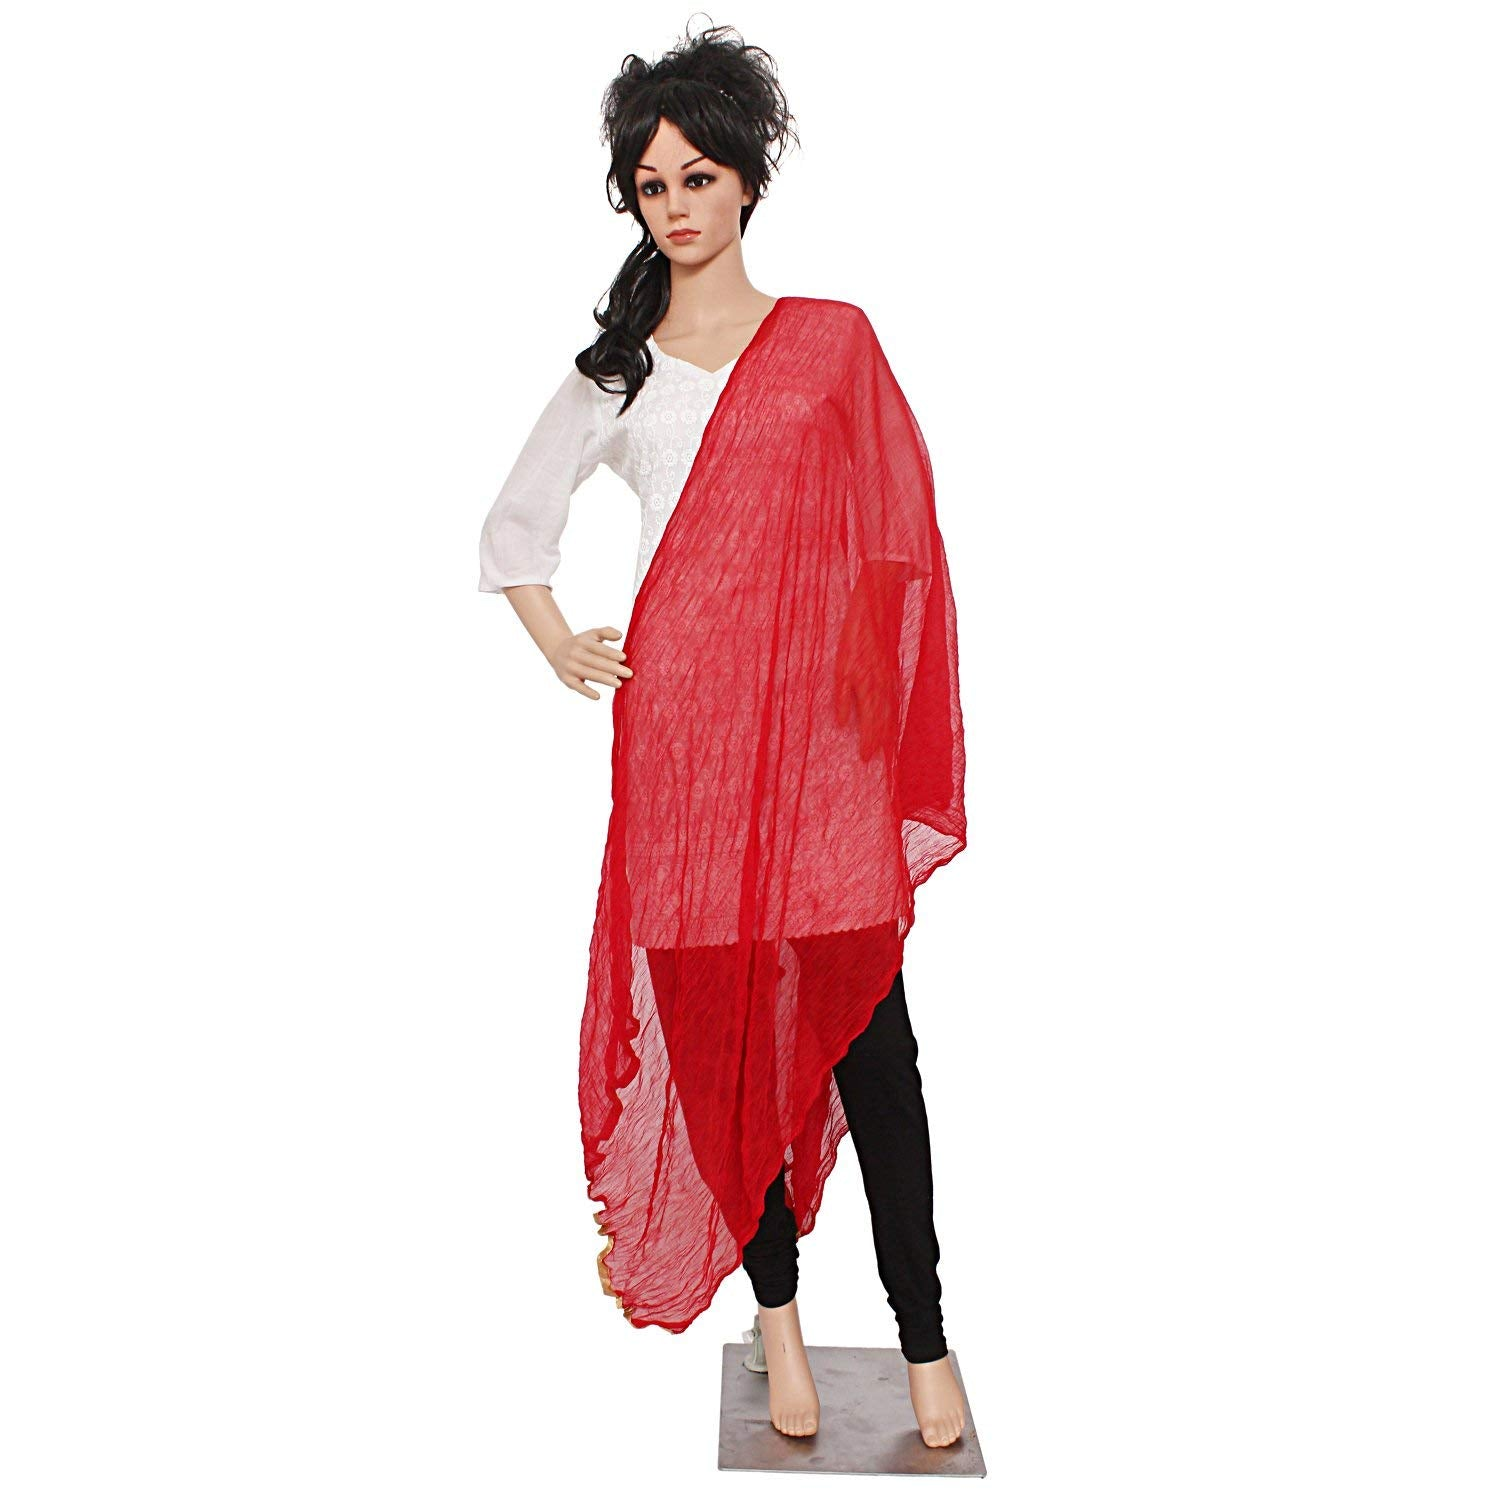 Solid / Plain Women's Dupatta With Golden Lace/Border (Red) - Bagaholics Gift